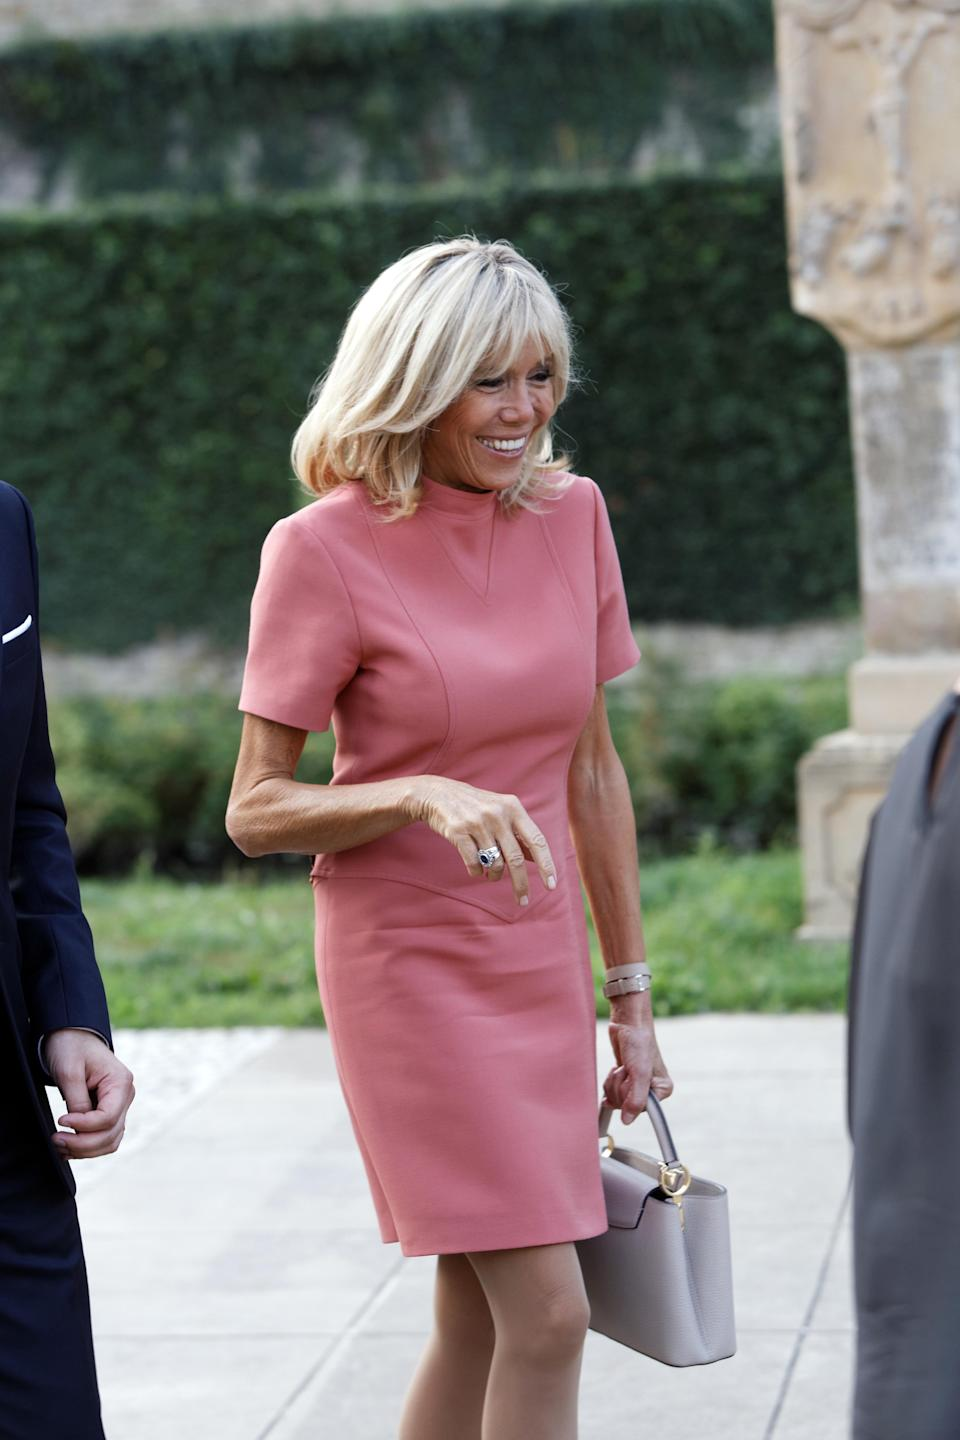 French first lady Brigitte Macron wore a bright-pink dress to Luxembourg last August. (Photo: Getty Images)